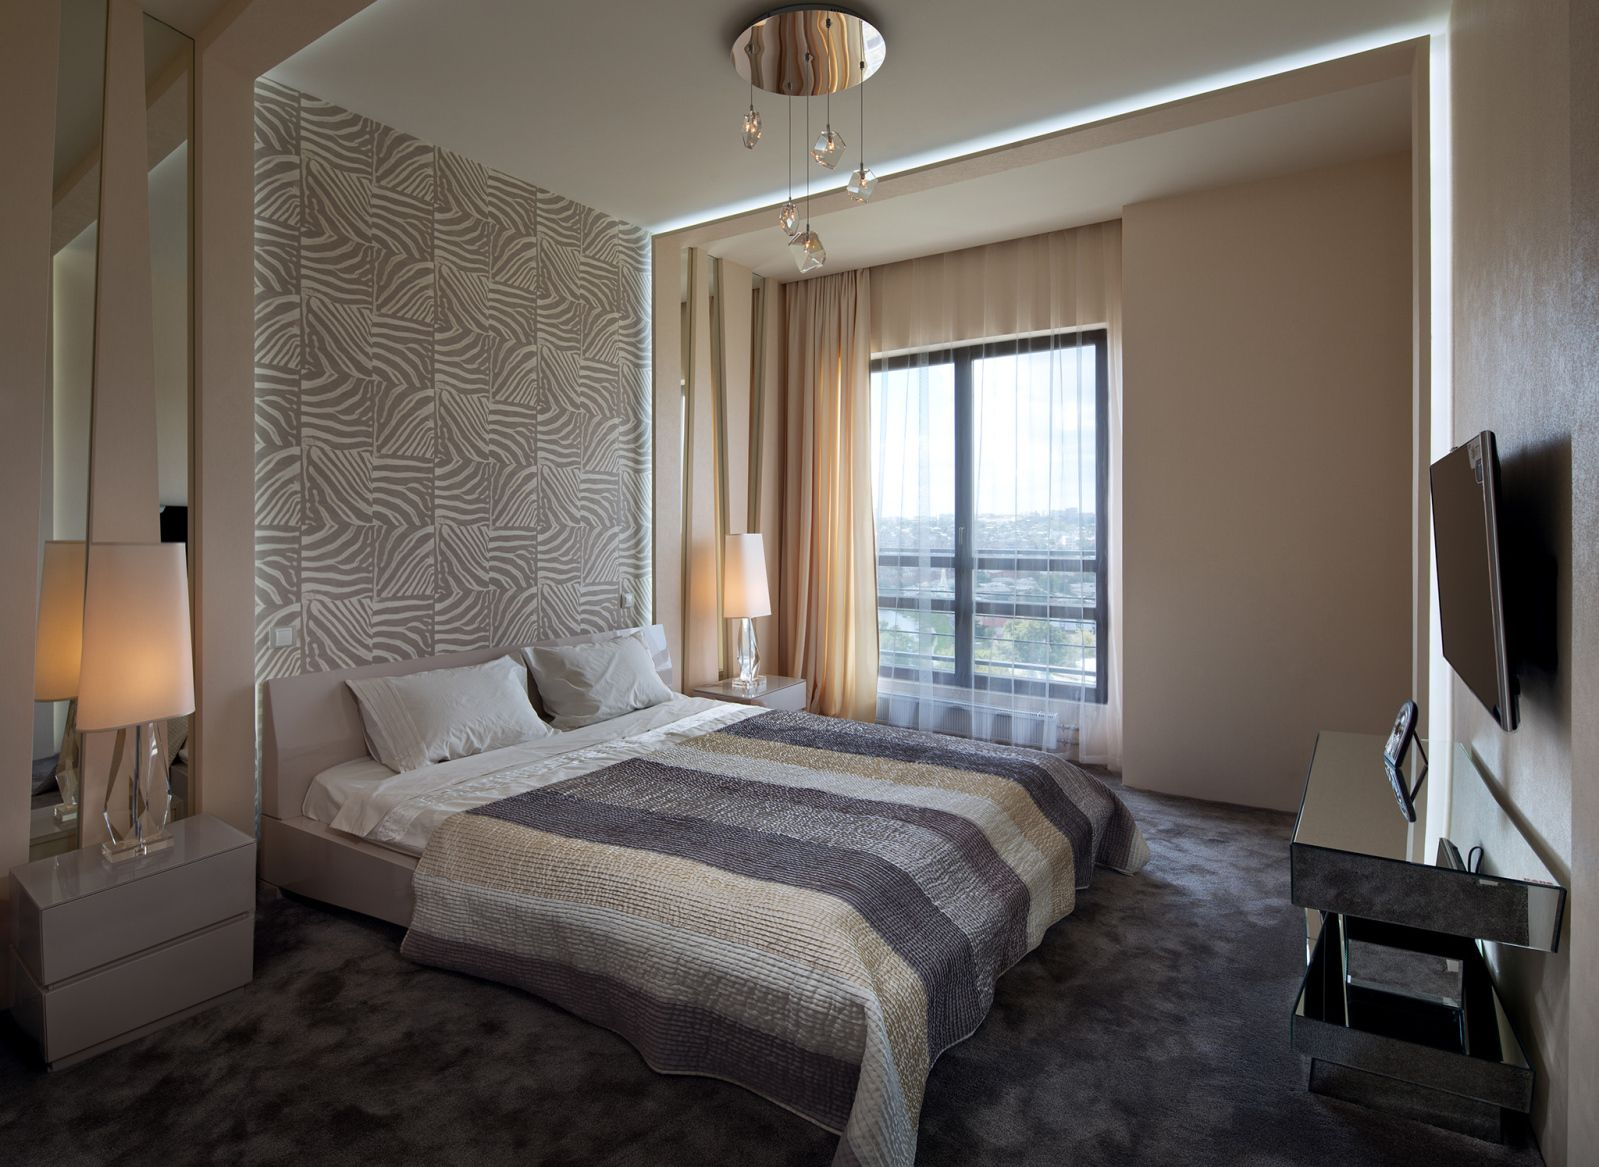 Interior Design Styles Combination in Modern Ukrainian Apartment. Bedroom atmosphere in pastel color theme and LED TV